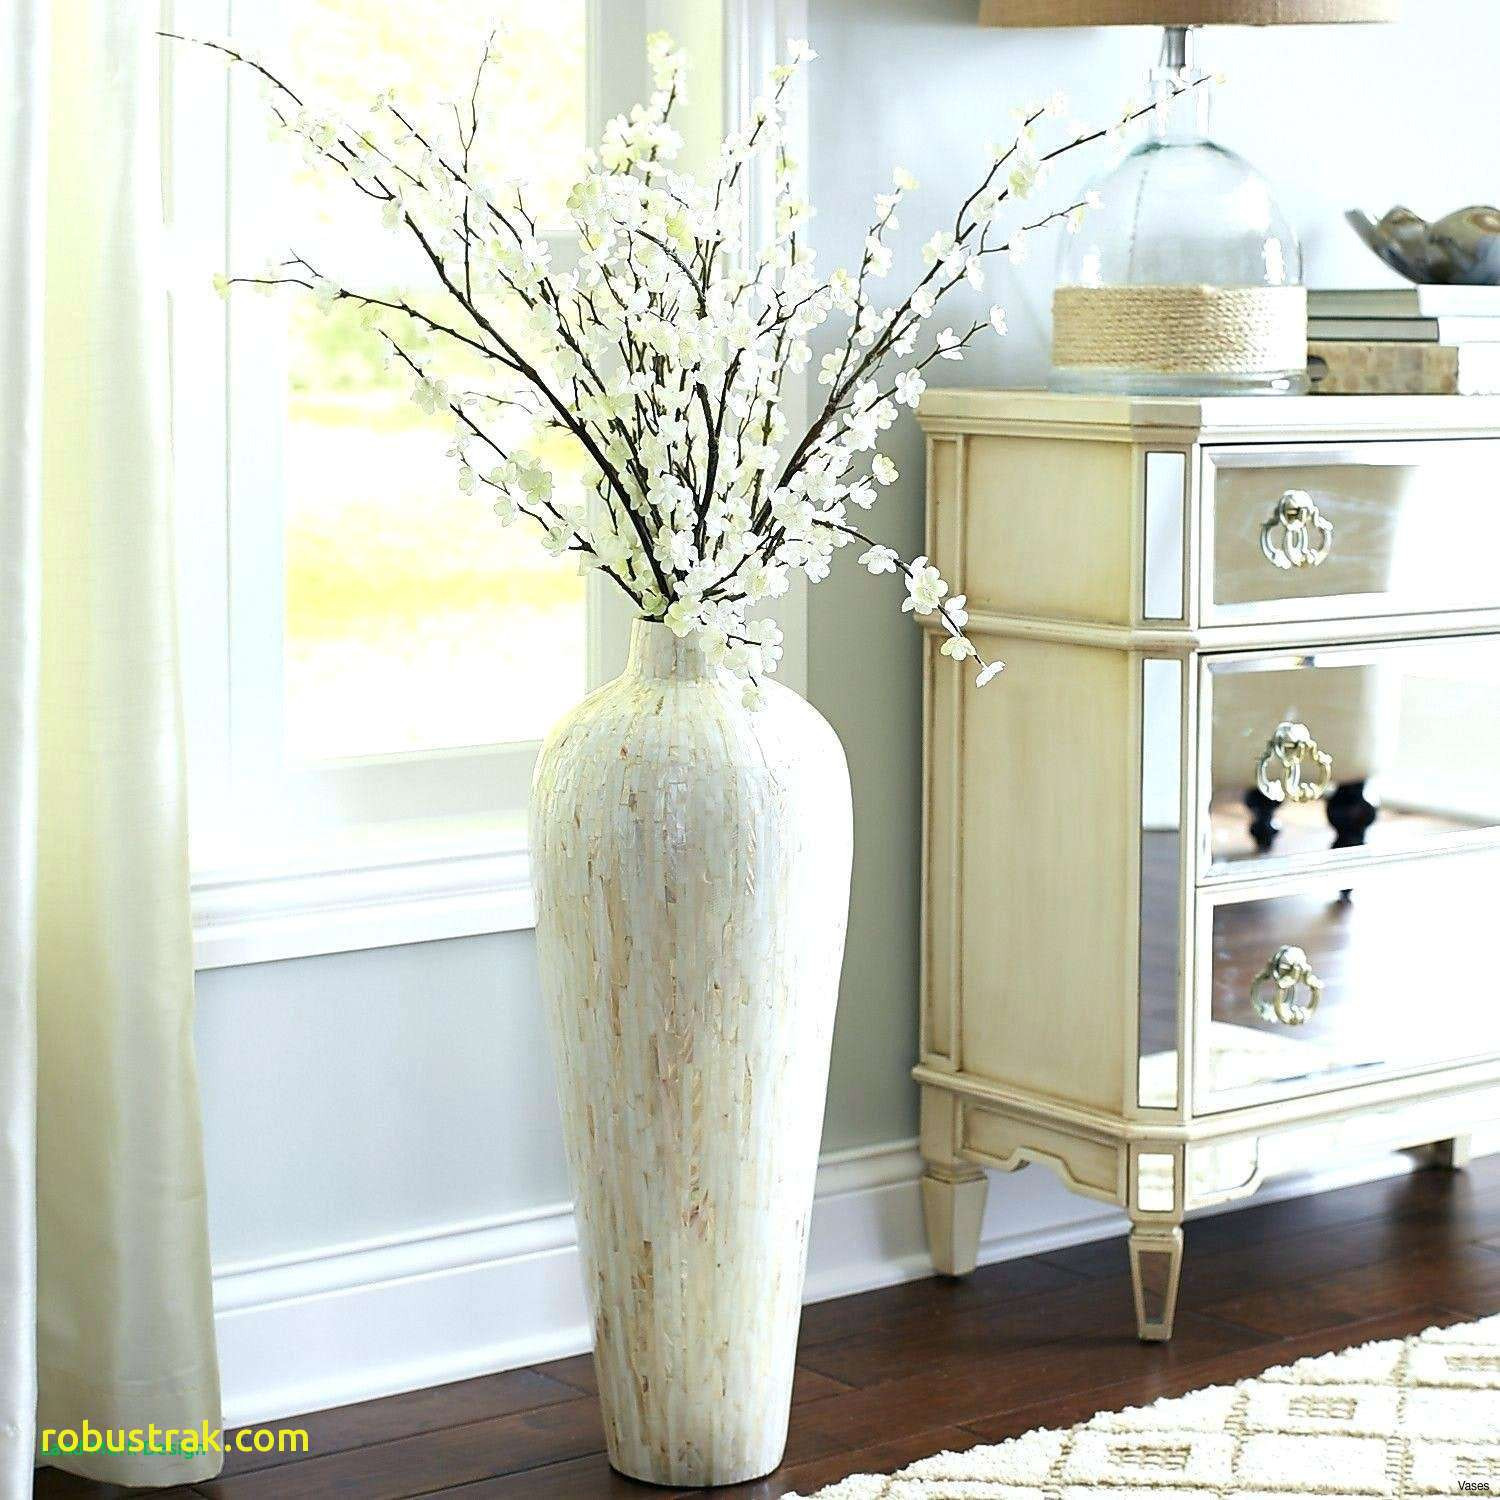 oversized glass floor vase of 20 elegant large floor vase decoration ideas bogekompresorturkiye com intended for tall floor vaseh vases extra large vase vasei 0d tall vase with branches